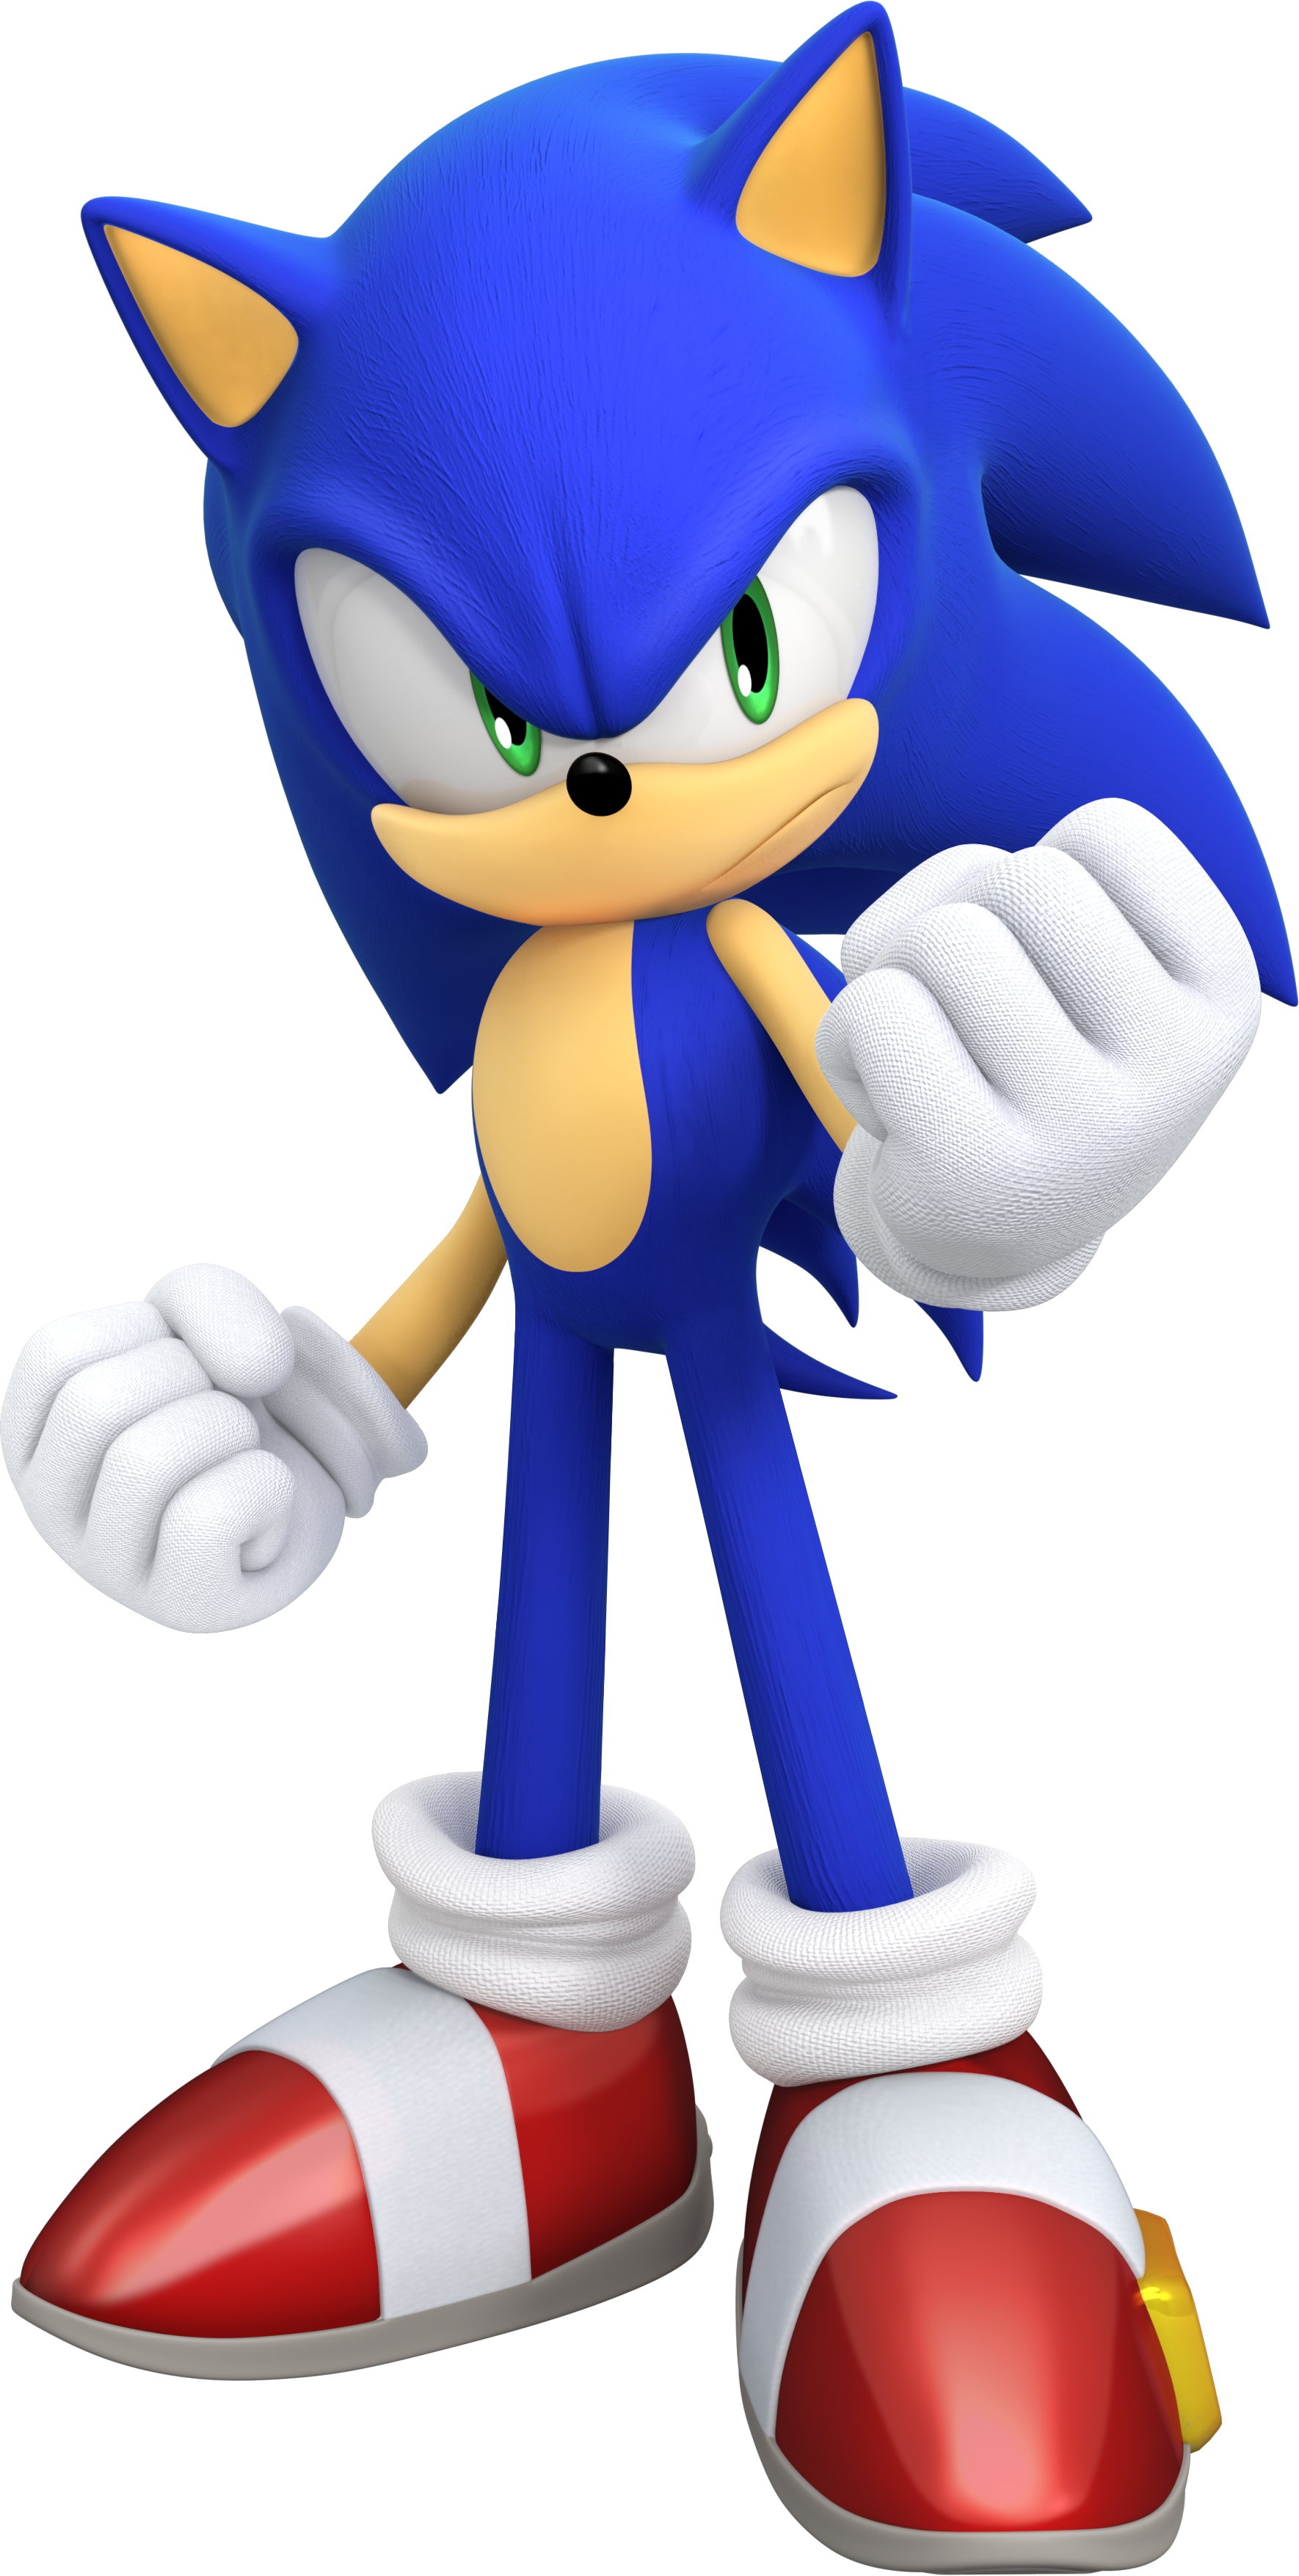 sonic the hedgehog sonic wiki fandom powered by wikia. Black Bedroom Furniture Sets. Home Design Ideas